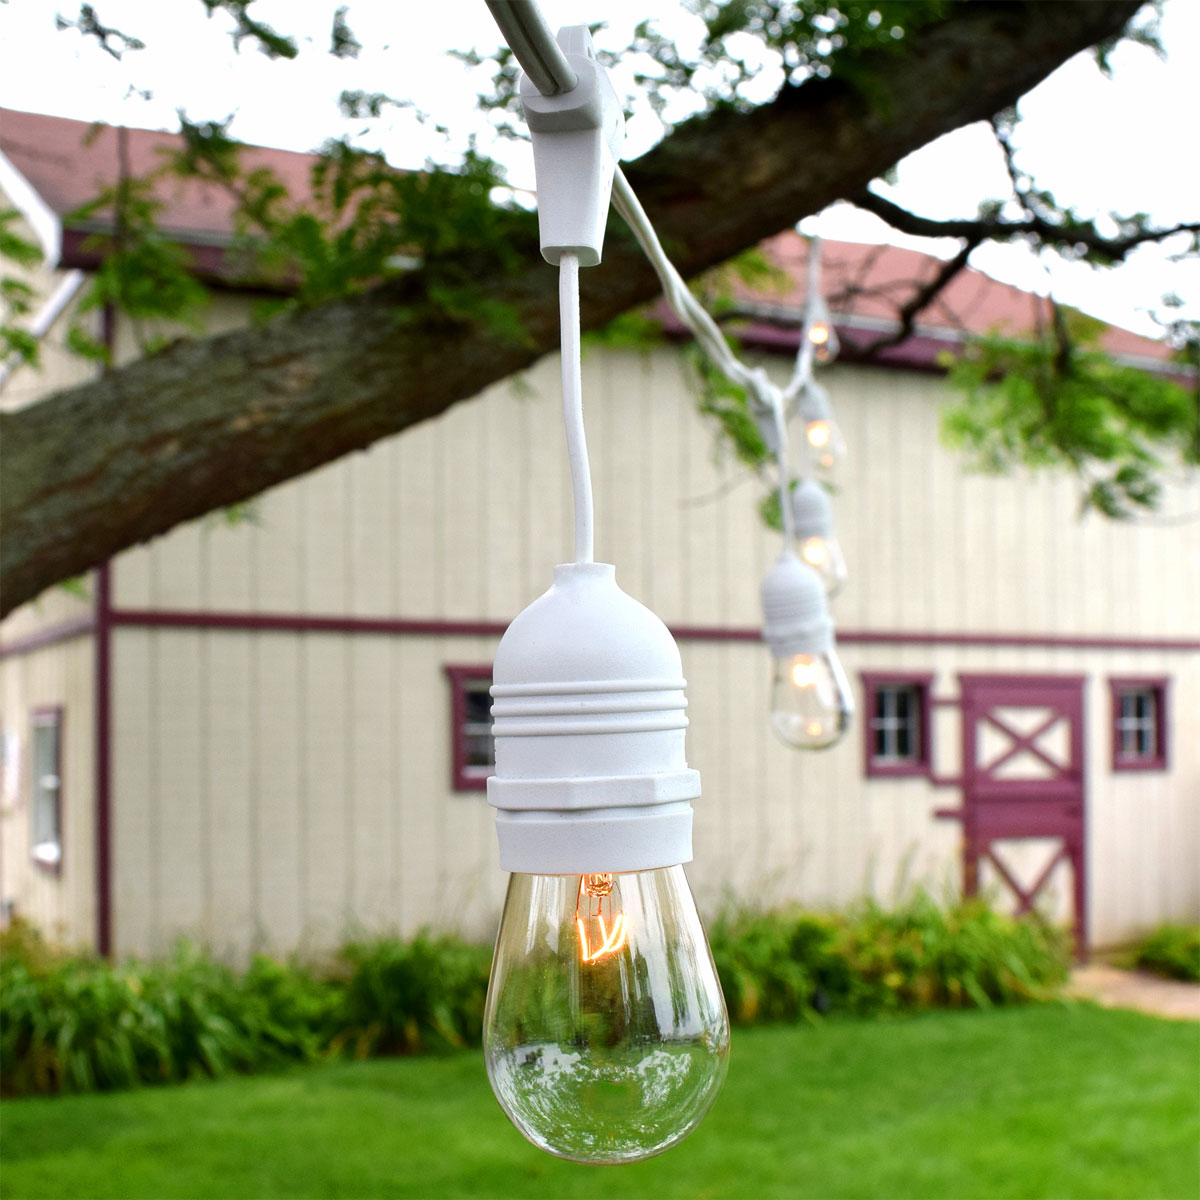 Outdoor patio string lights 54 white suspended patio string lights commercial grade 54 supsended white workwithnaturefo